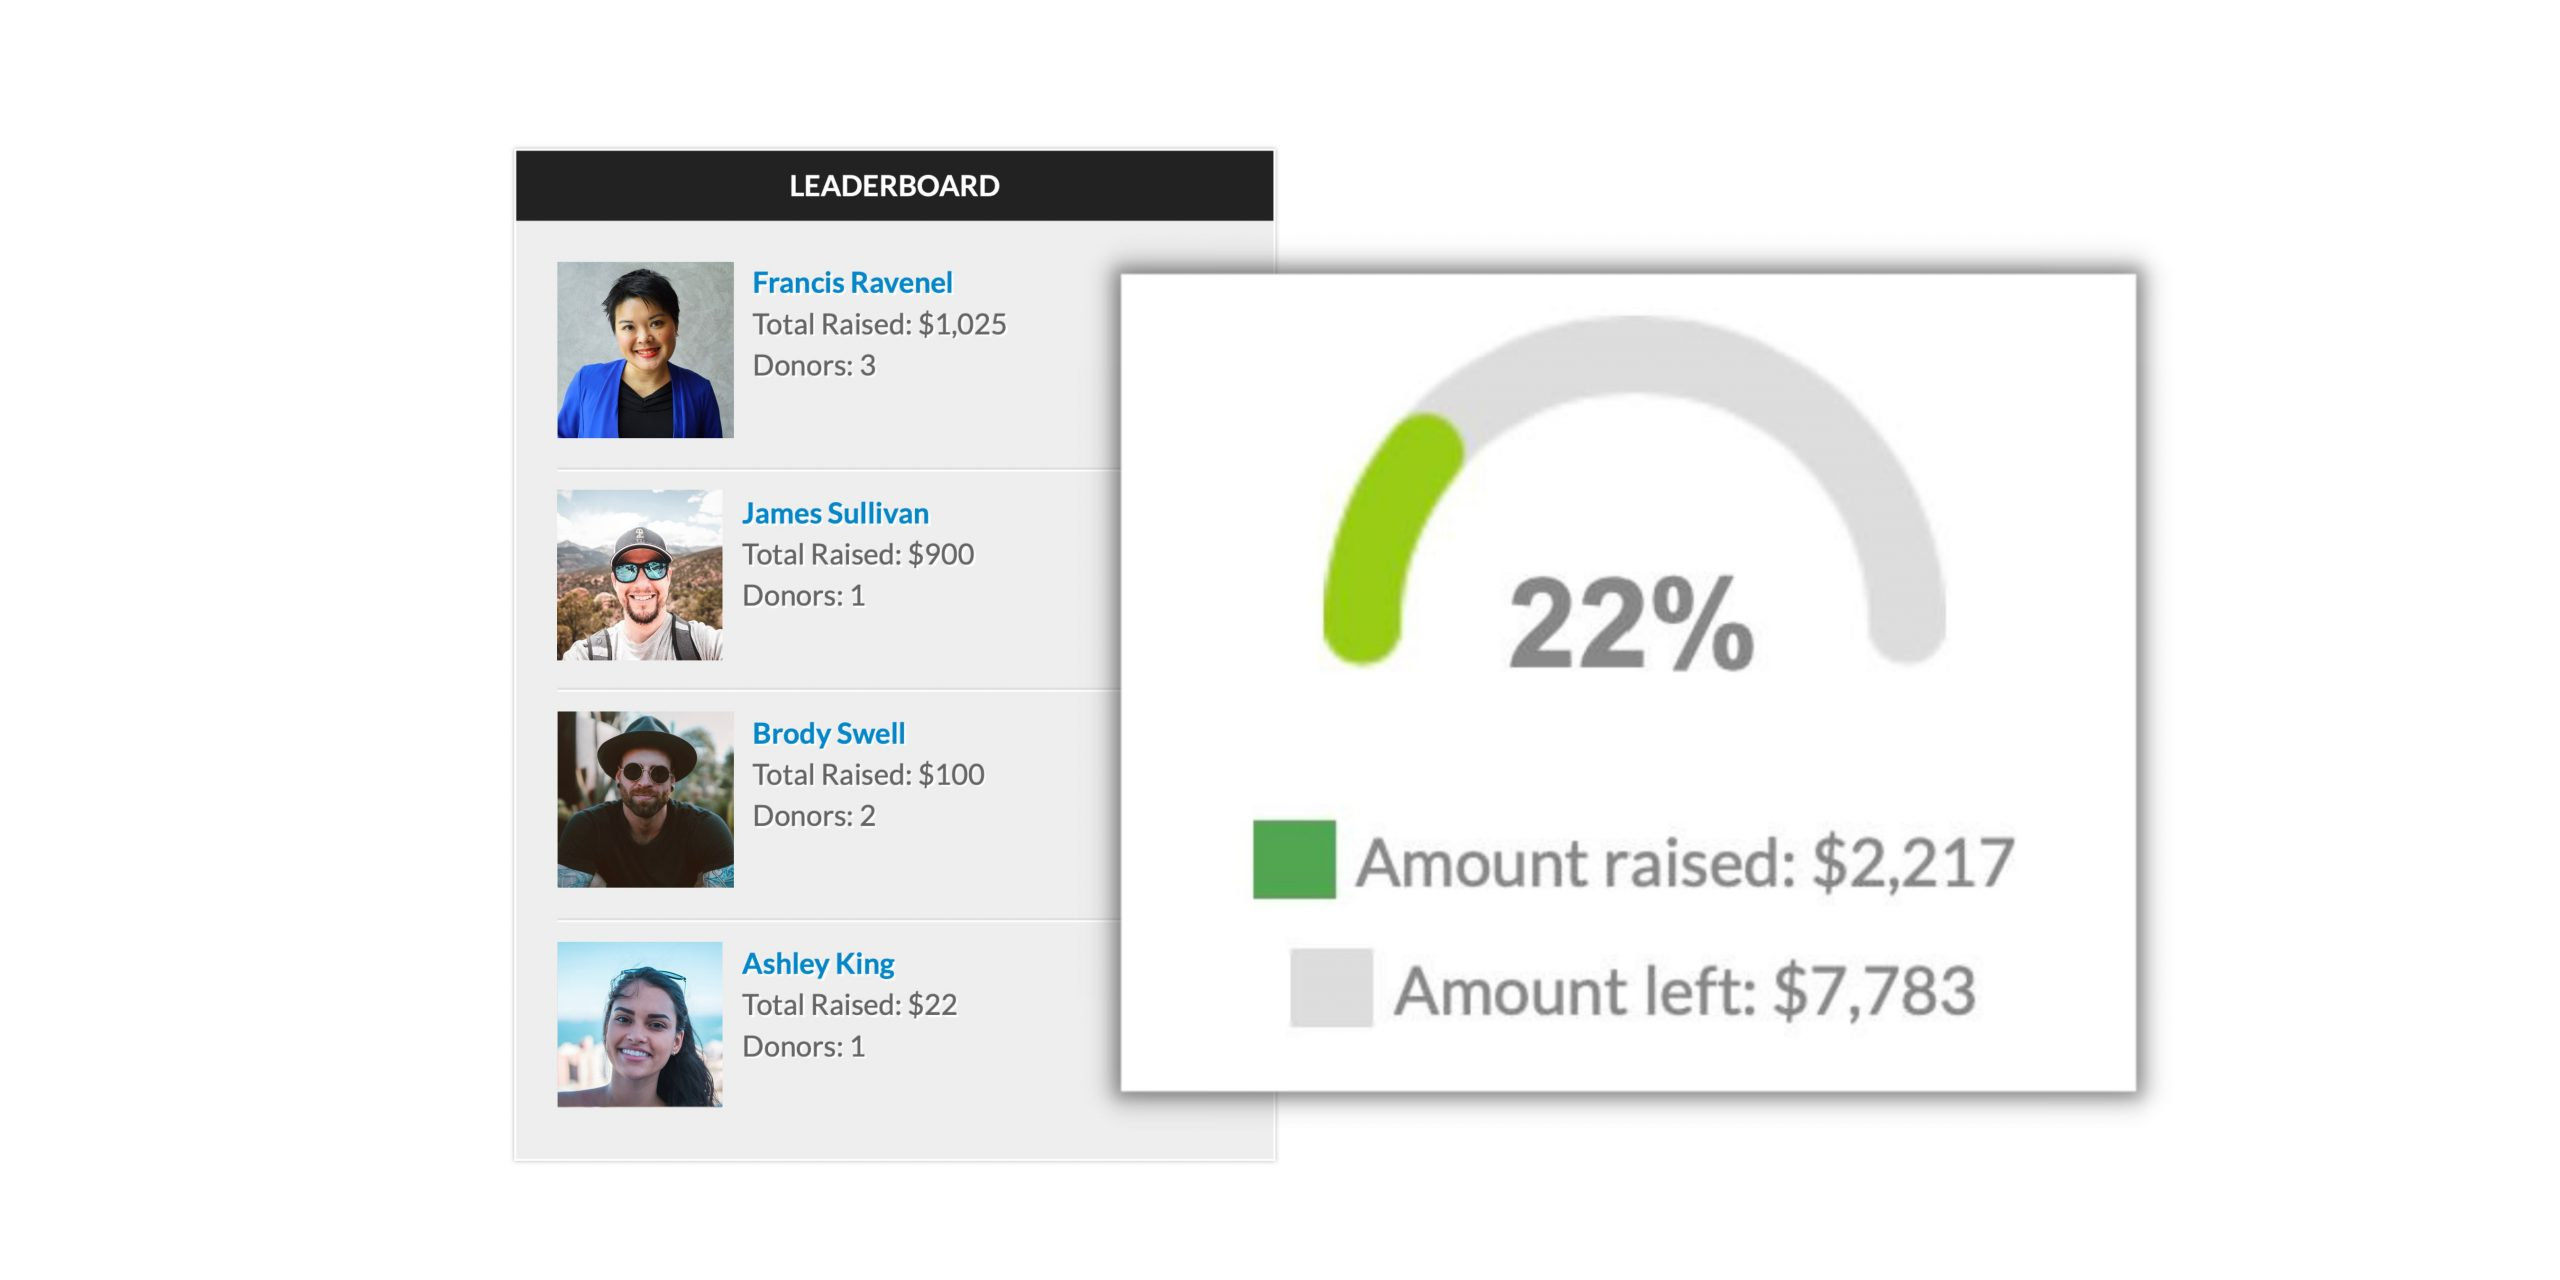 Peer-to-peer fundraising for nonprofits